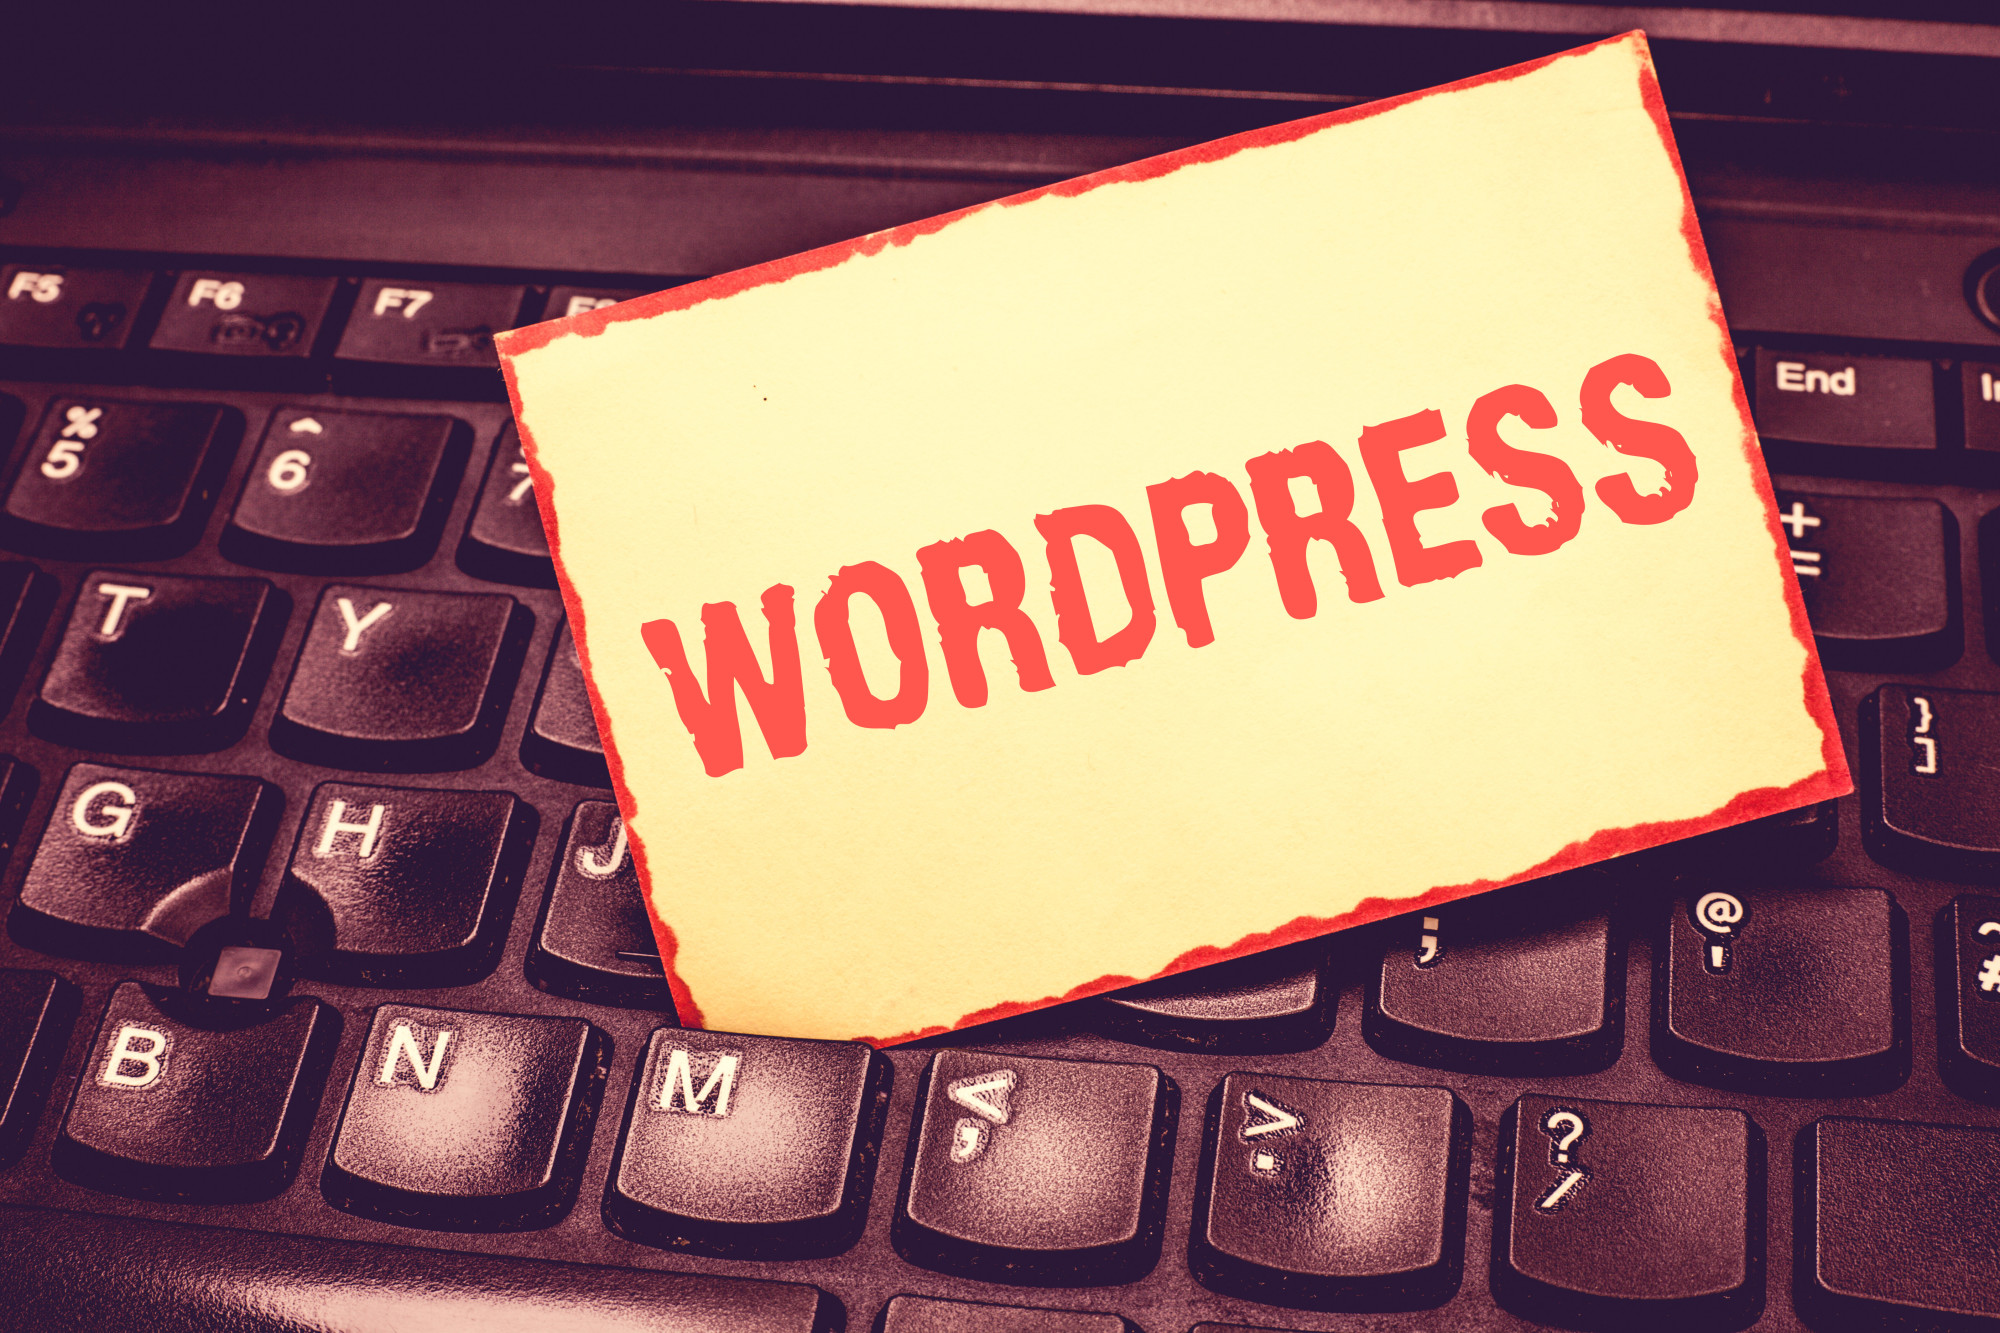 wordpress sign on keyboard